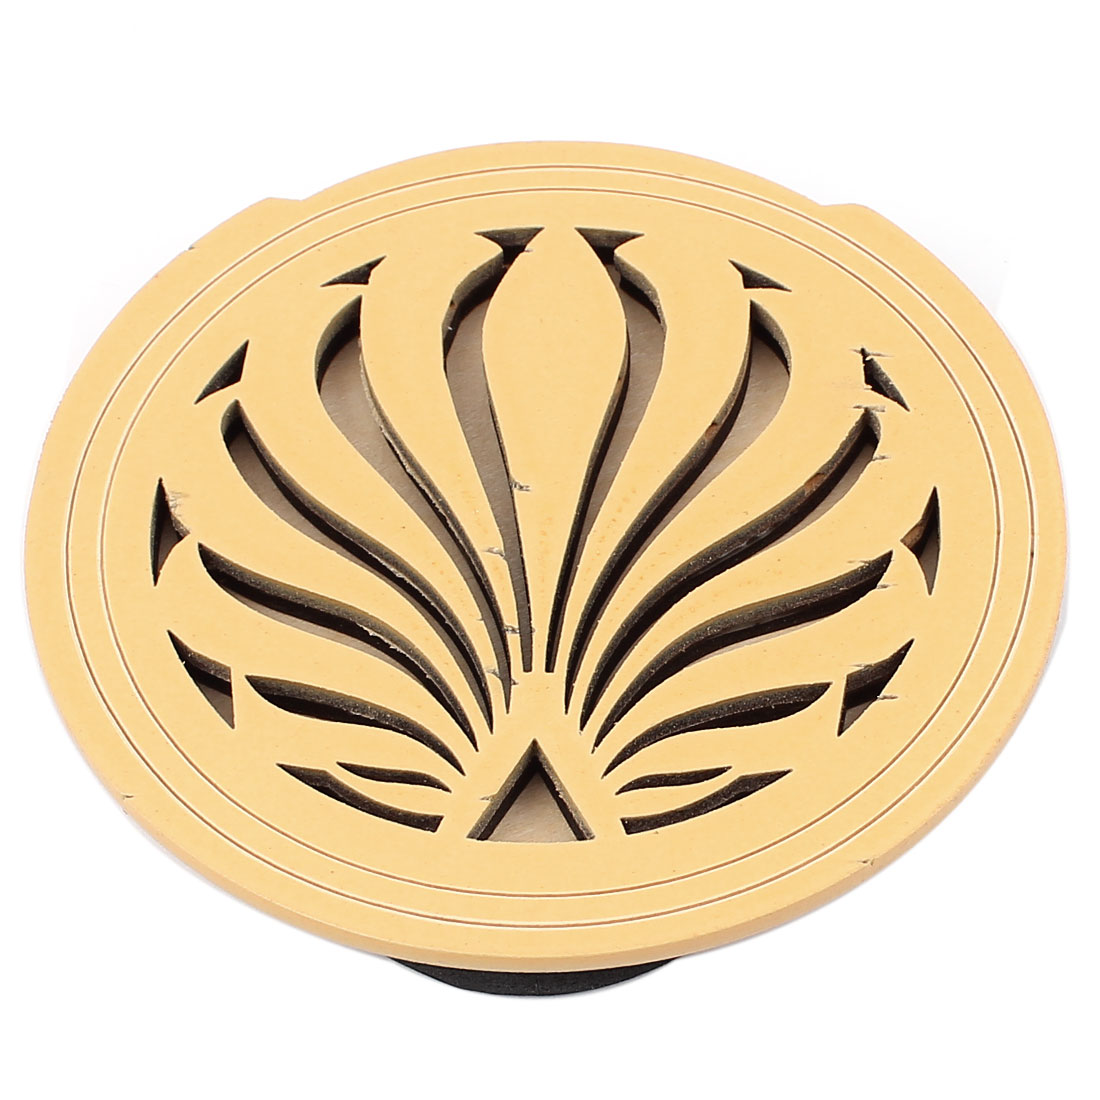 Acoustic Electric Guitar Feedback Buster Flower Pattern Wood Soundhole Hole Sound Cover Block Screeching Halt Protector